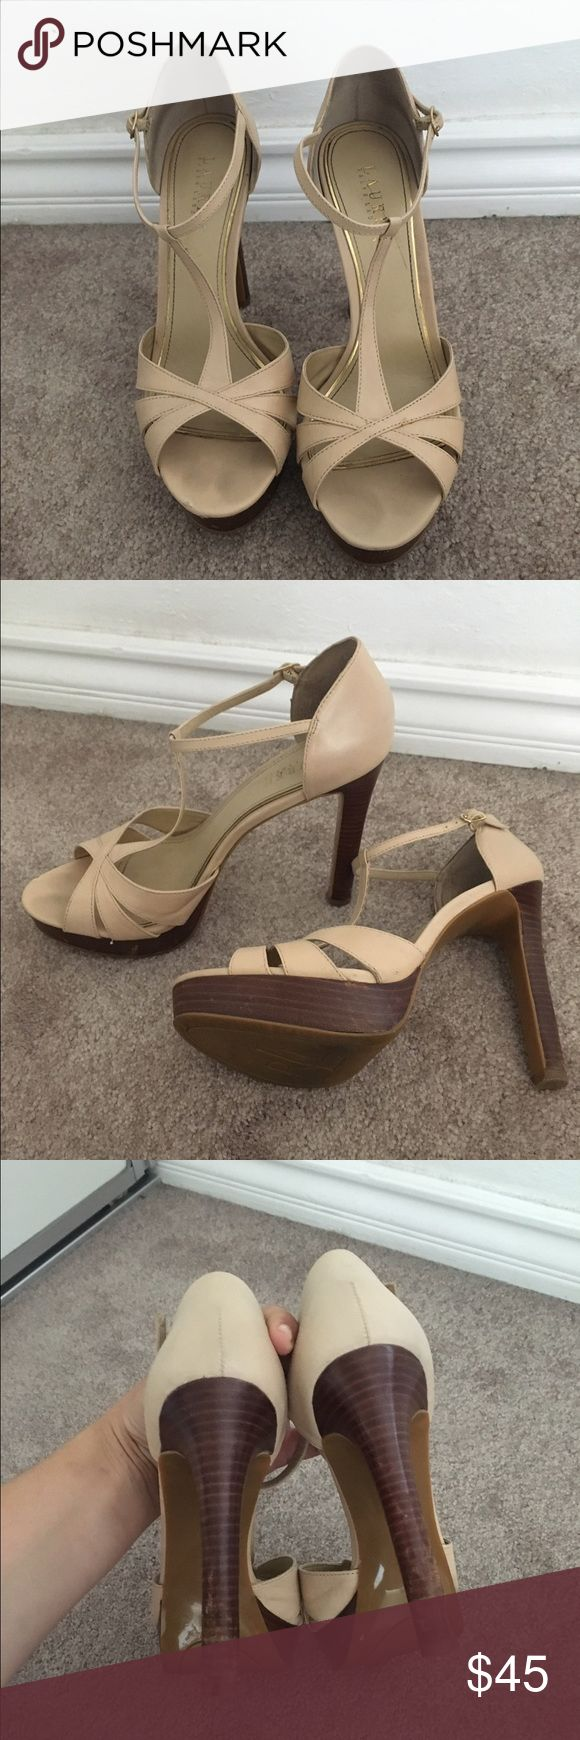 Lauren Ralph Lauren nude T-strap heels These nude heels are beautiful and go with a large range of outfits. They have been worn a few time and have developed some scratches on the fake wood parts but they are still amazing shoes that last a lifetime. Lauren Ralph Lauren Shoes Heels